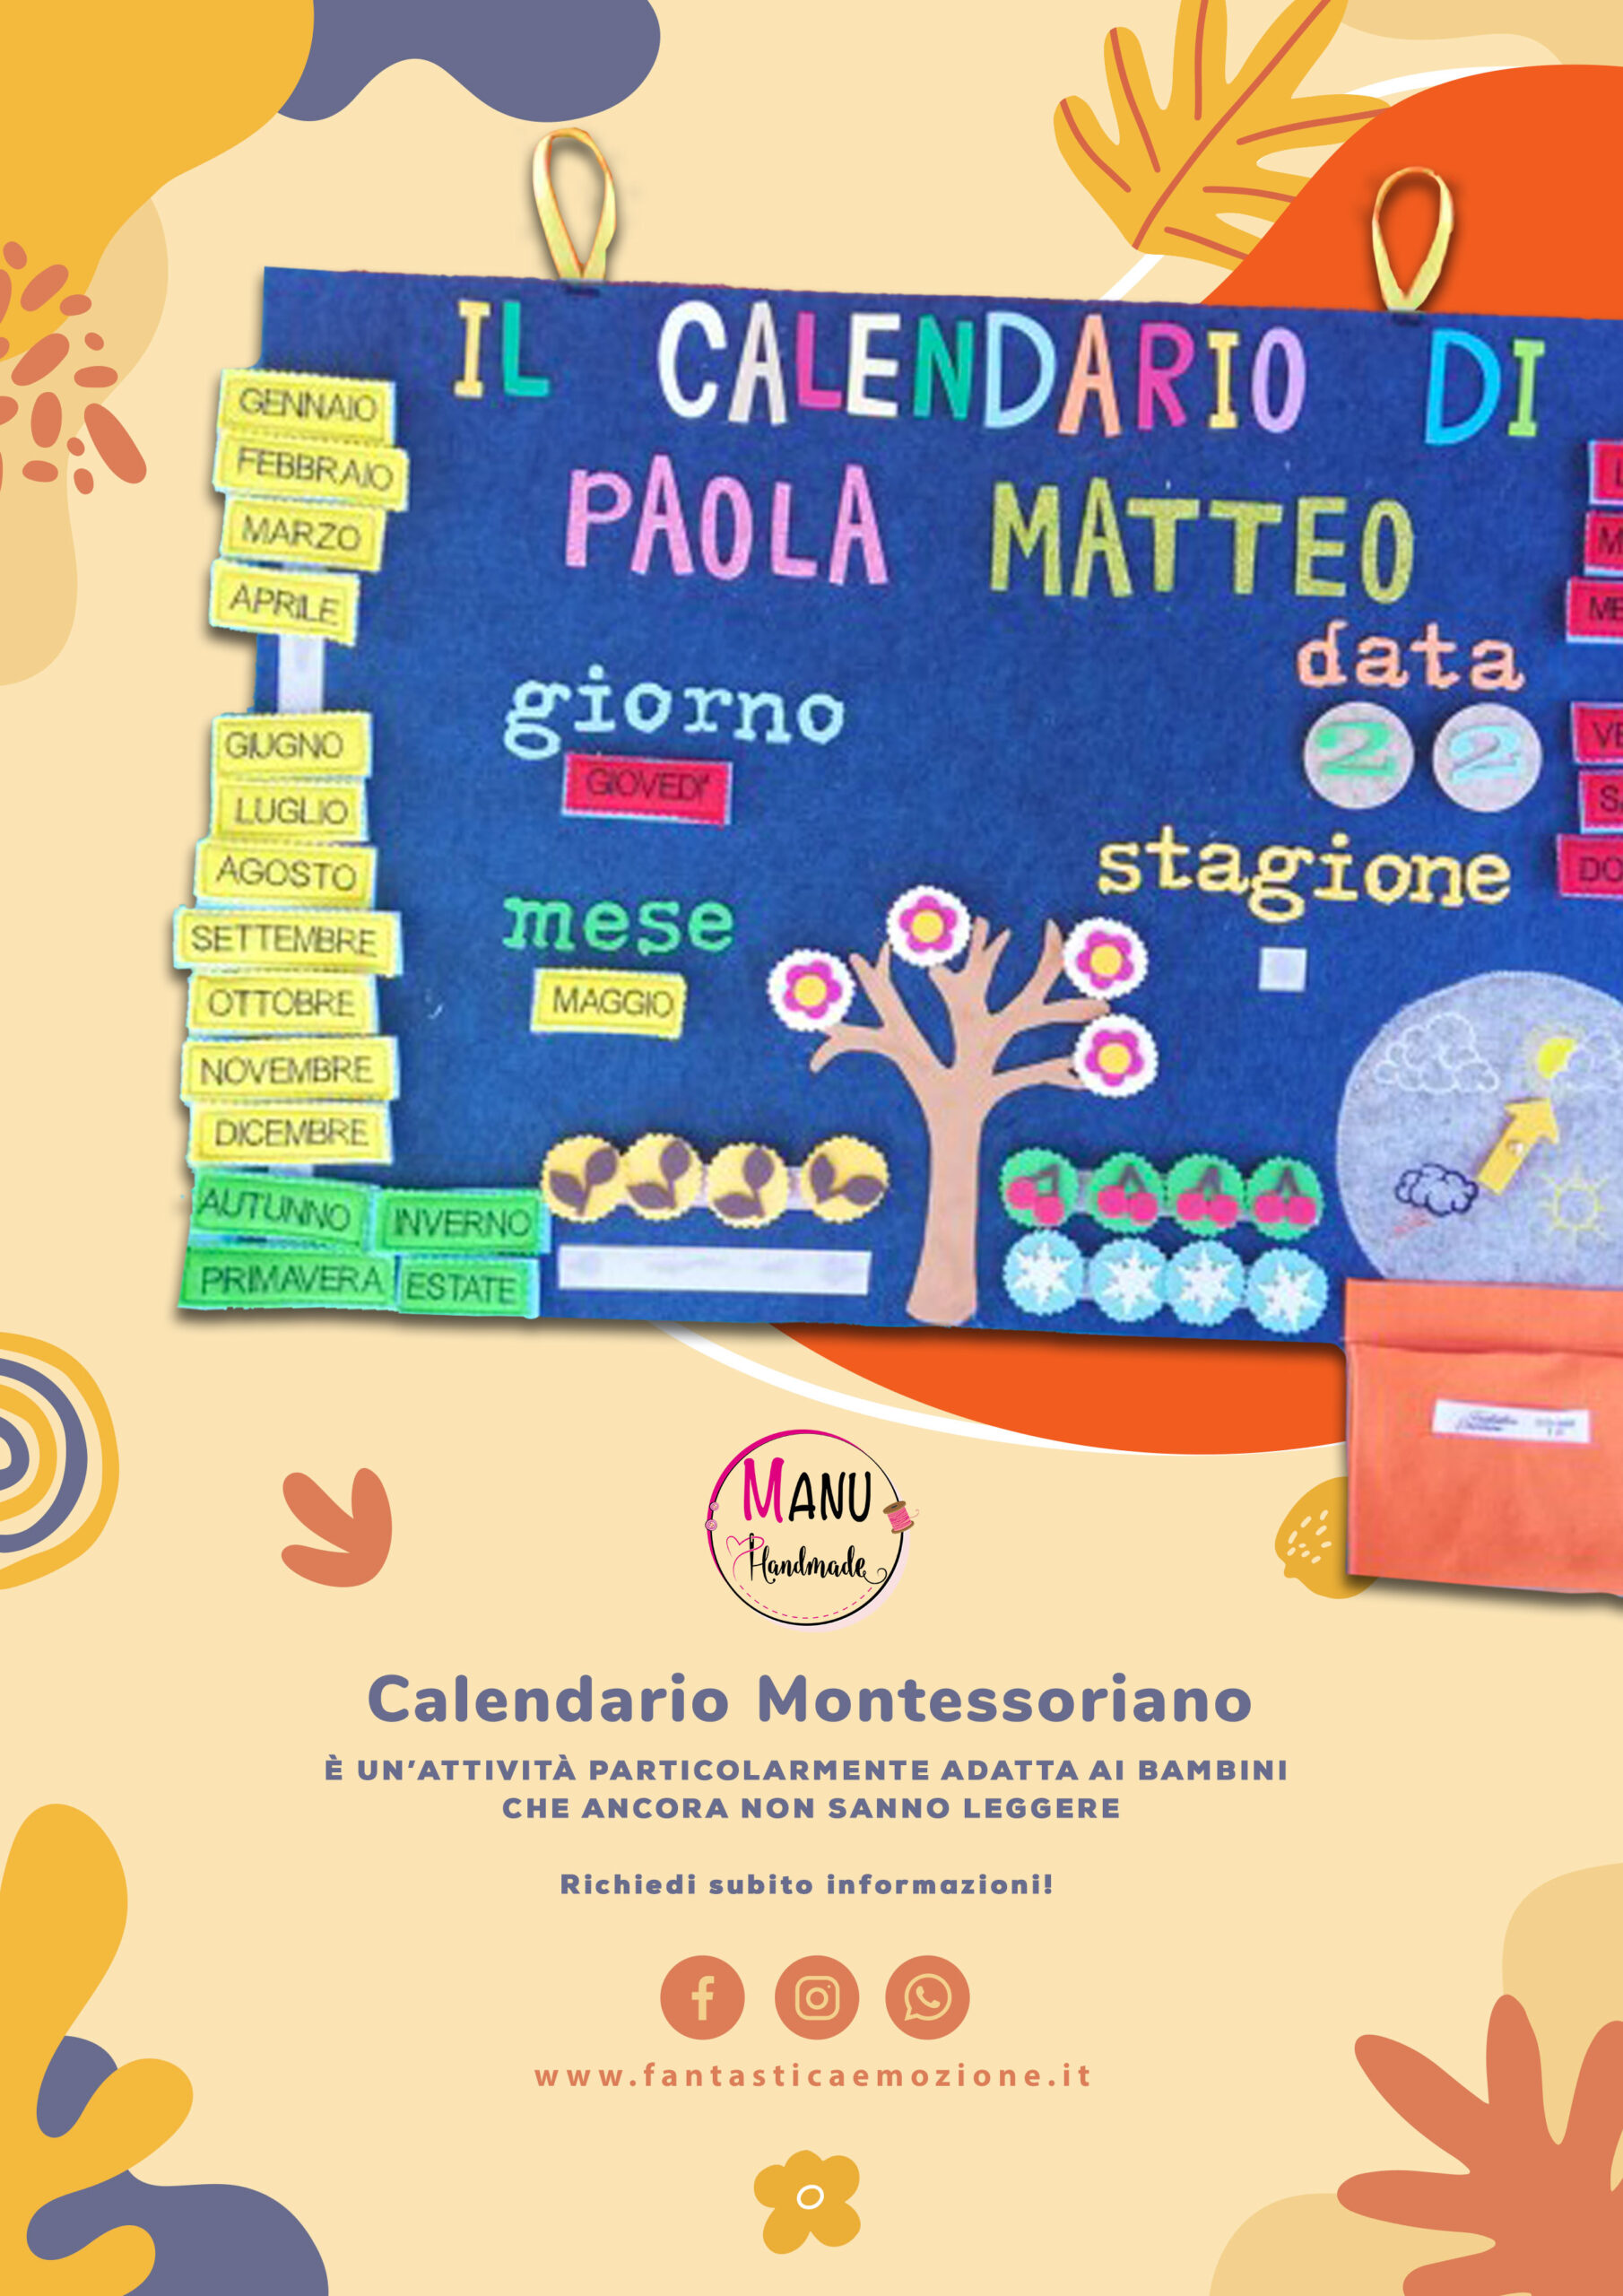 Calendario Montessoriano Manu Hand Made